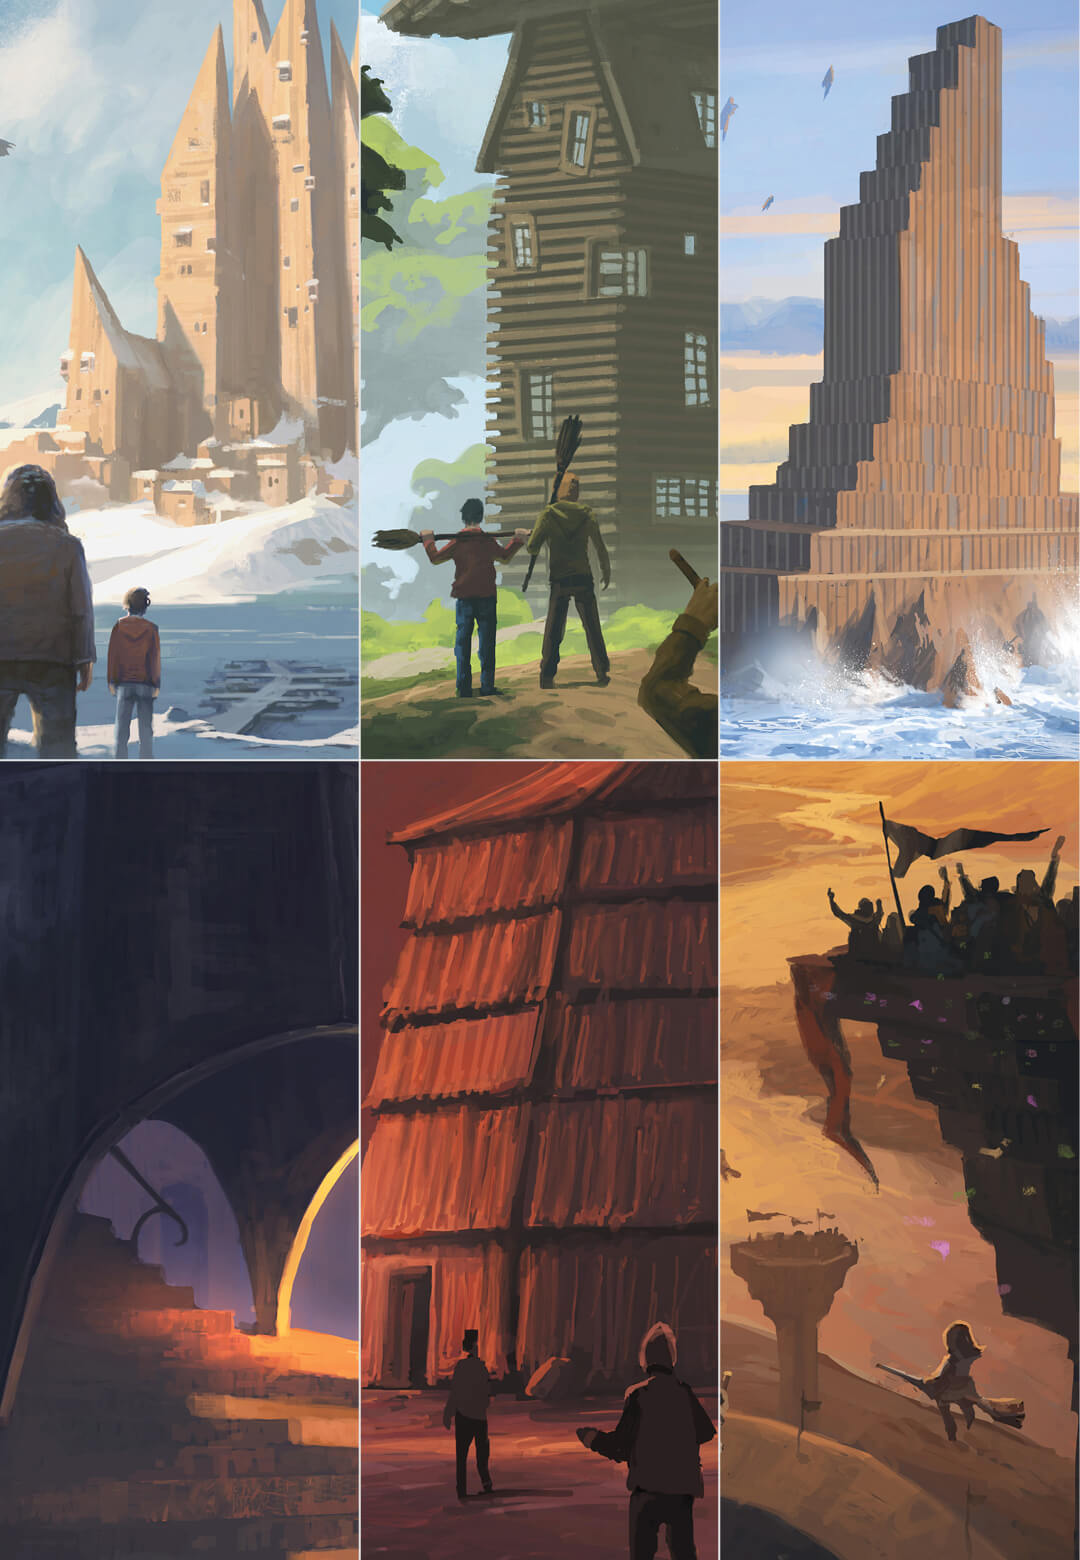 The new covers for the 2021 Italian edition of the Harry Potter books published by Salani Editore are centered on architecture of iconic locations from the novels | Harry Potter Book Covers | Michele De Lucchi/ AMDL Circle | STIRworld